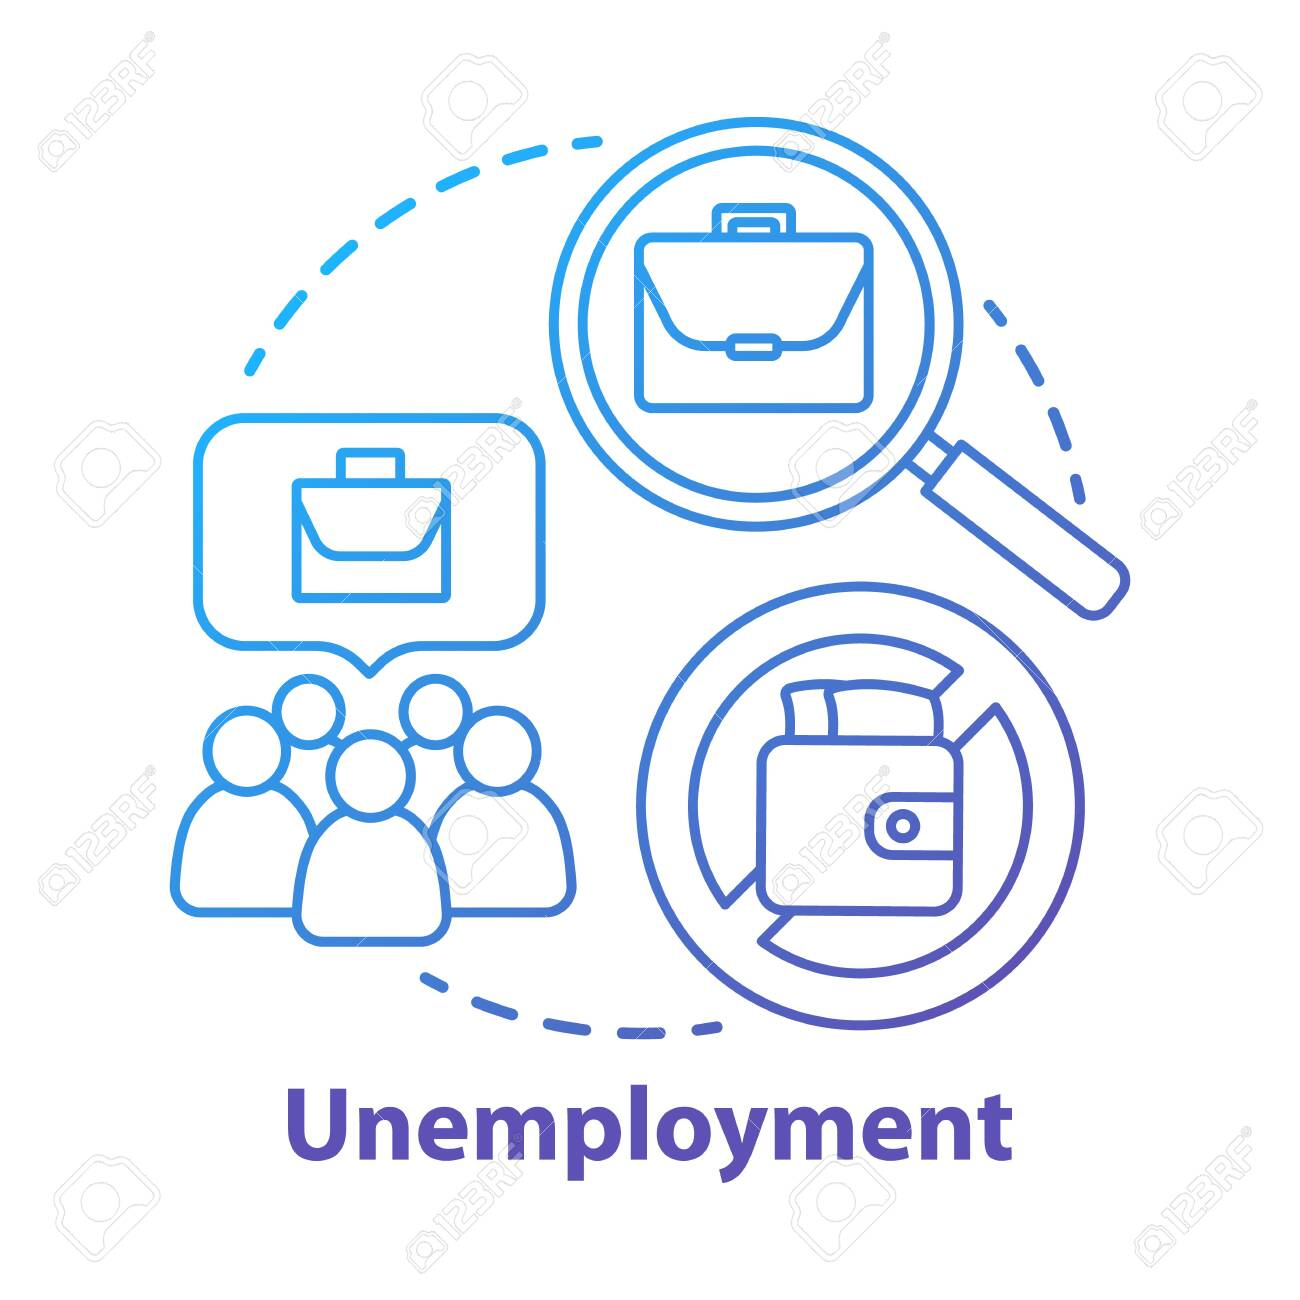 Unemployment concept icon. Poverty idea thin line illustration. Joblessness. Jobless and unemployed people. Economy social problem. Workers rights. Vector isolated outline drawing - 129943969